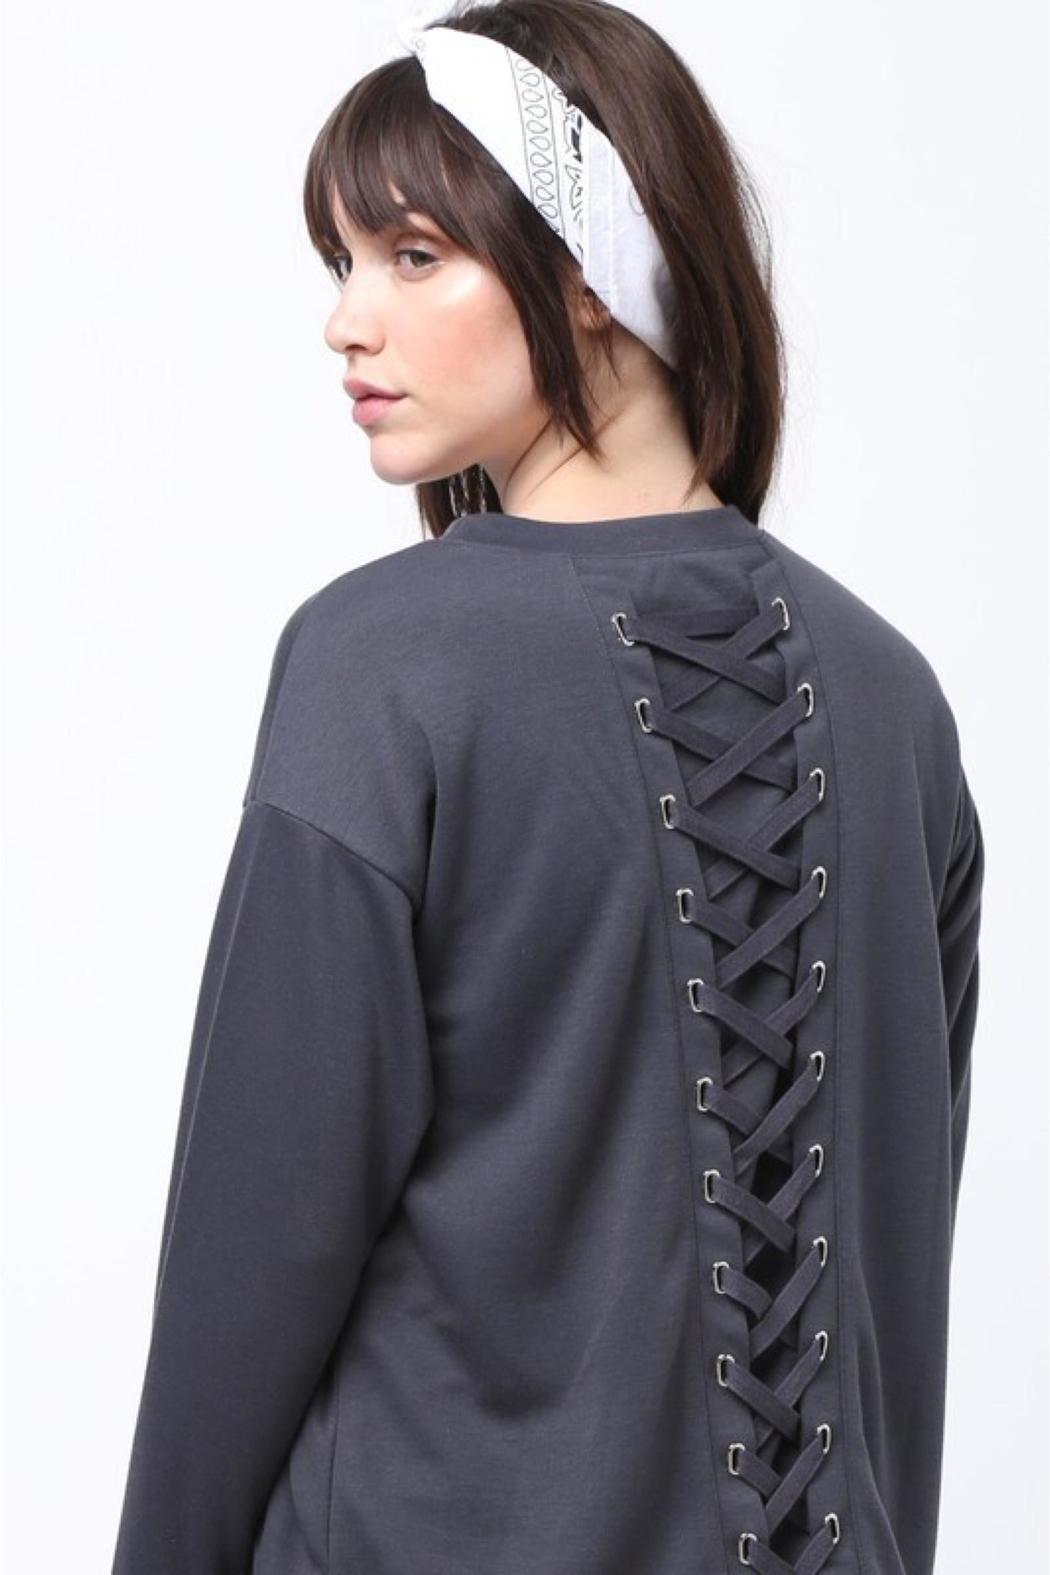 People Outfitter Grey Lace-Up Sweatshirt - Main Image